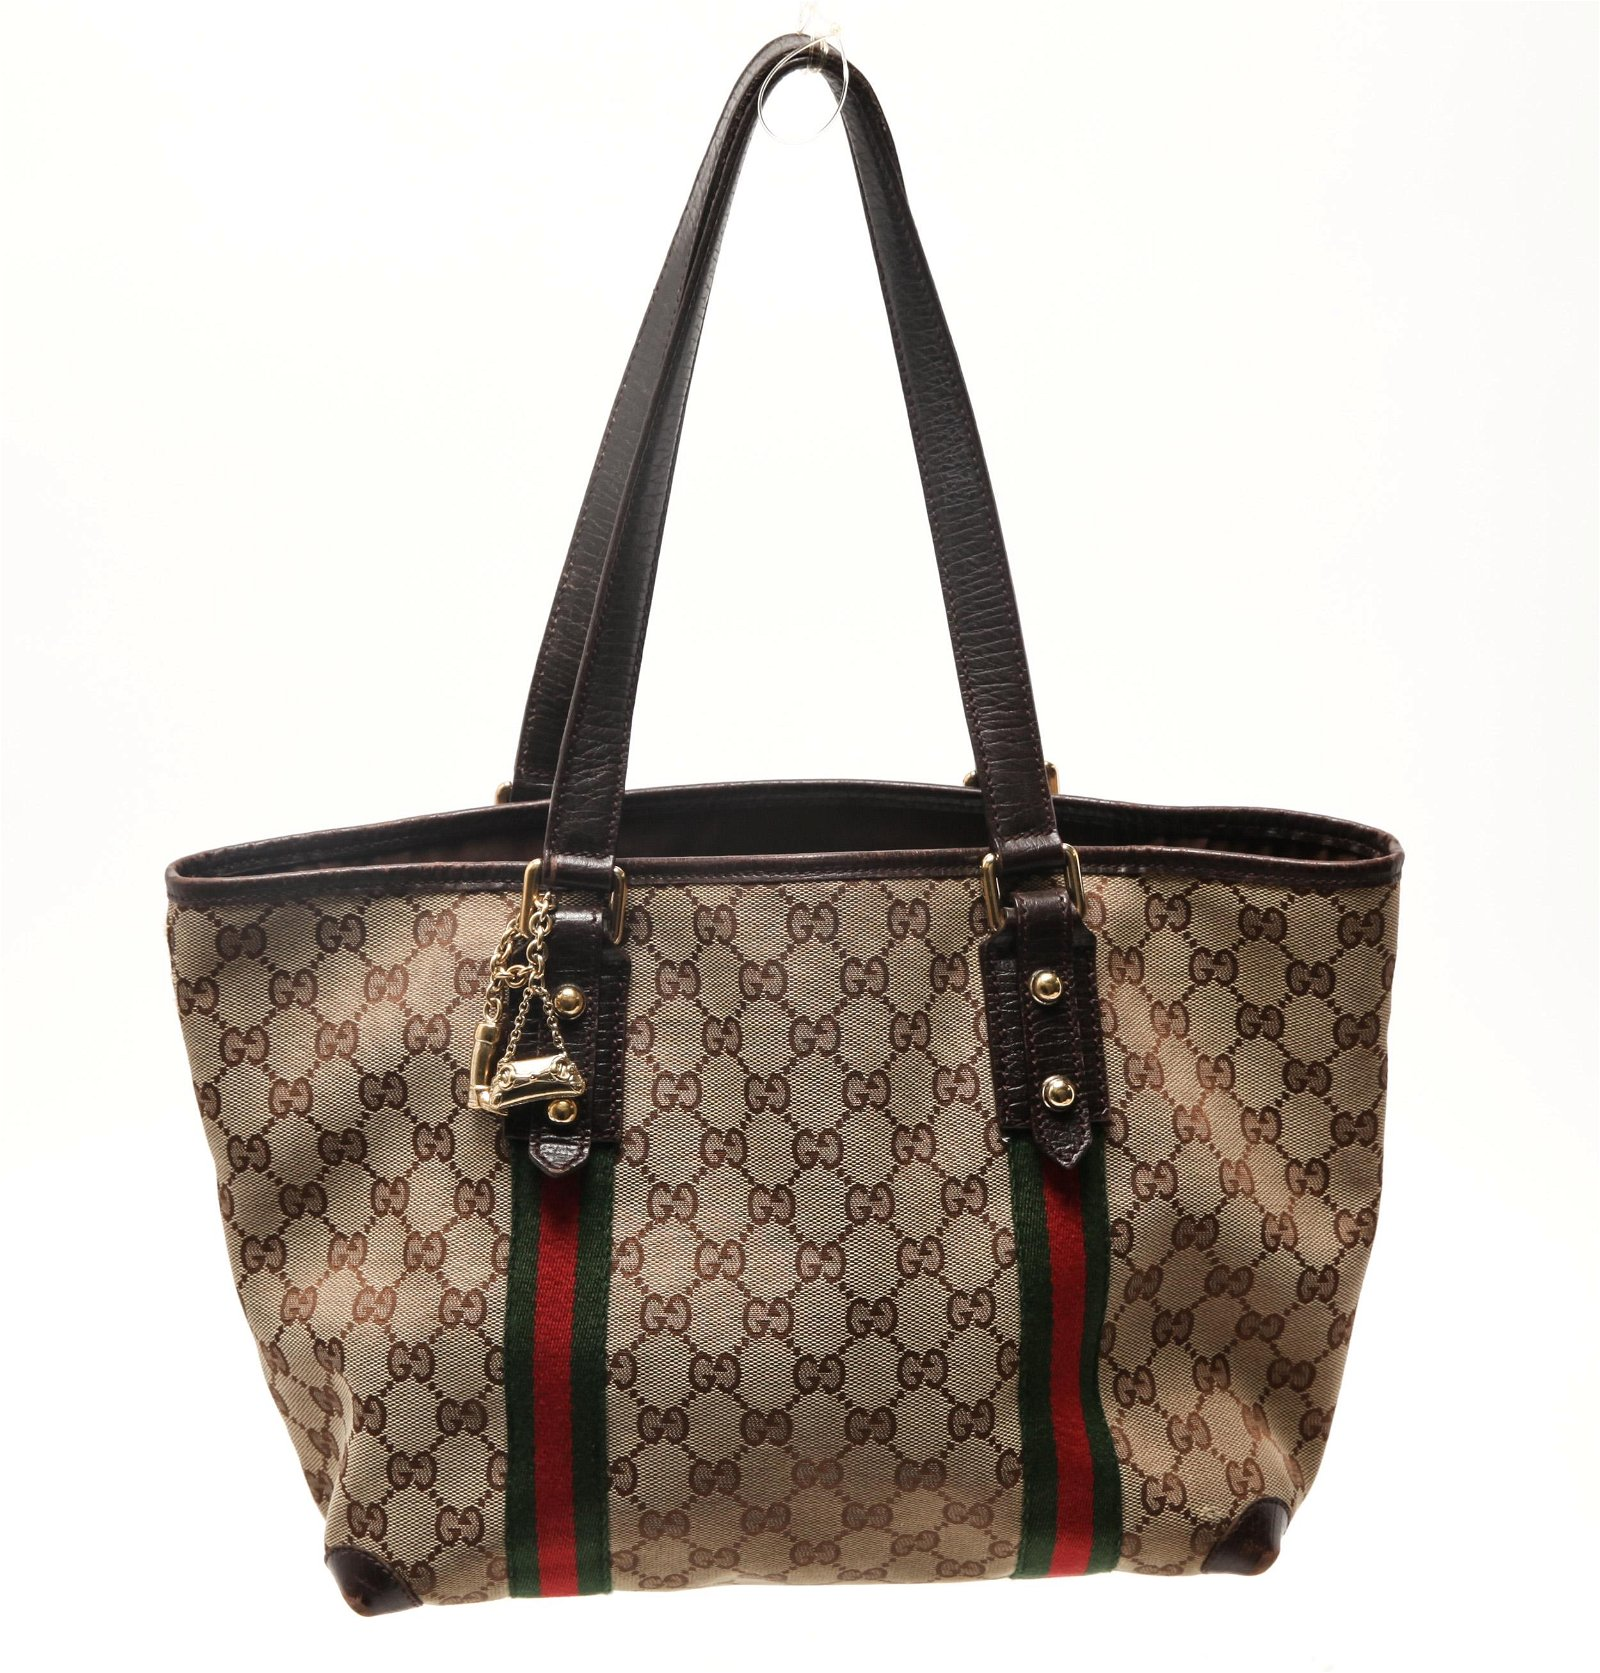 Gucci Monogram Canvas and Leather Bag